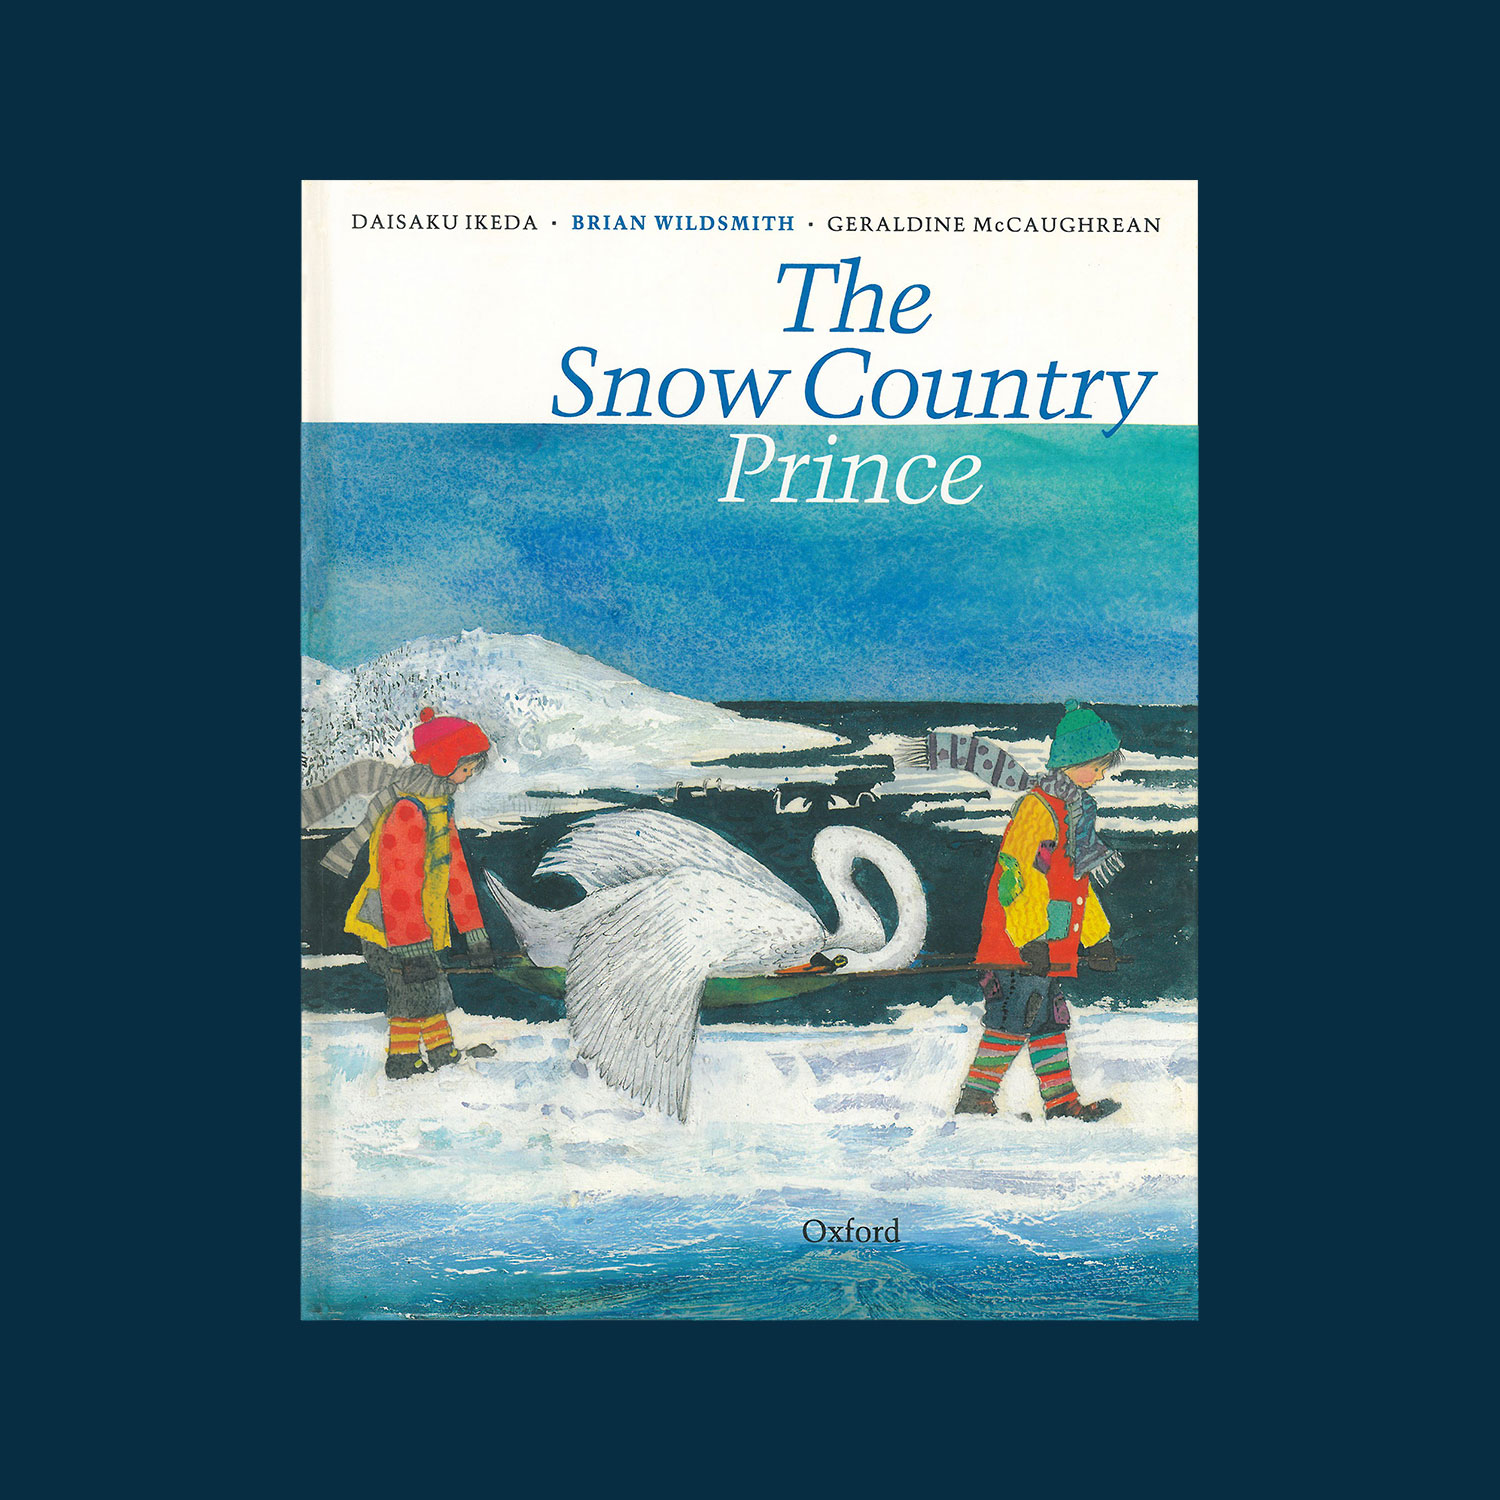 """THE SNOW COUNTRY PRINCE - Written by Daisaku Ikeda, translated into English by Geraldine McCaughrean, illustrated by Brian Wildsmith. 1990""""A gentle Japanese tale about two children who care for the birds, especially an injured swan, while their father is away for the winter fishing. The supernatural Snow Country Prince is grateful; perhaps he's responsible for bringing Papa home? Wildsmith's familiar, flamboyant art, his imaginatively observed creatures displayed against lovely impressionistic vistas, is handsomely showcased in this oversized volume.""""Kirkus Reviews"""